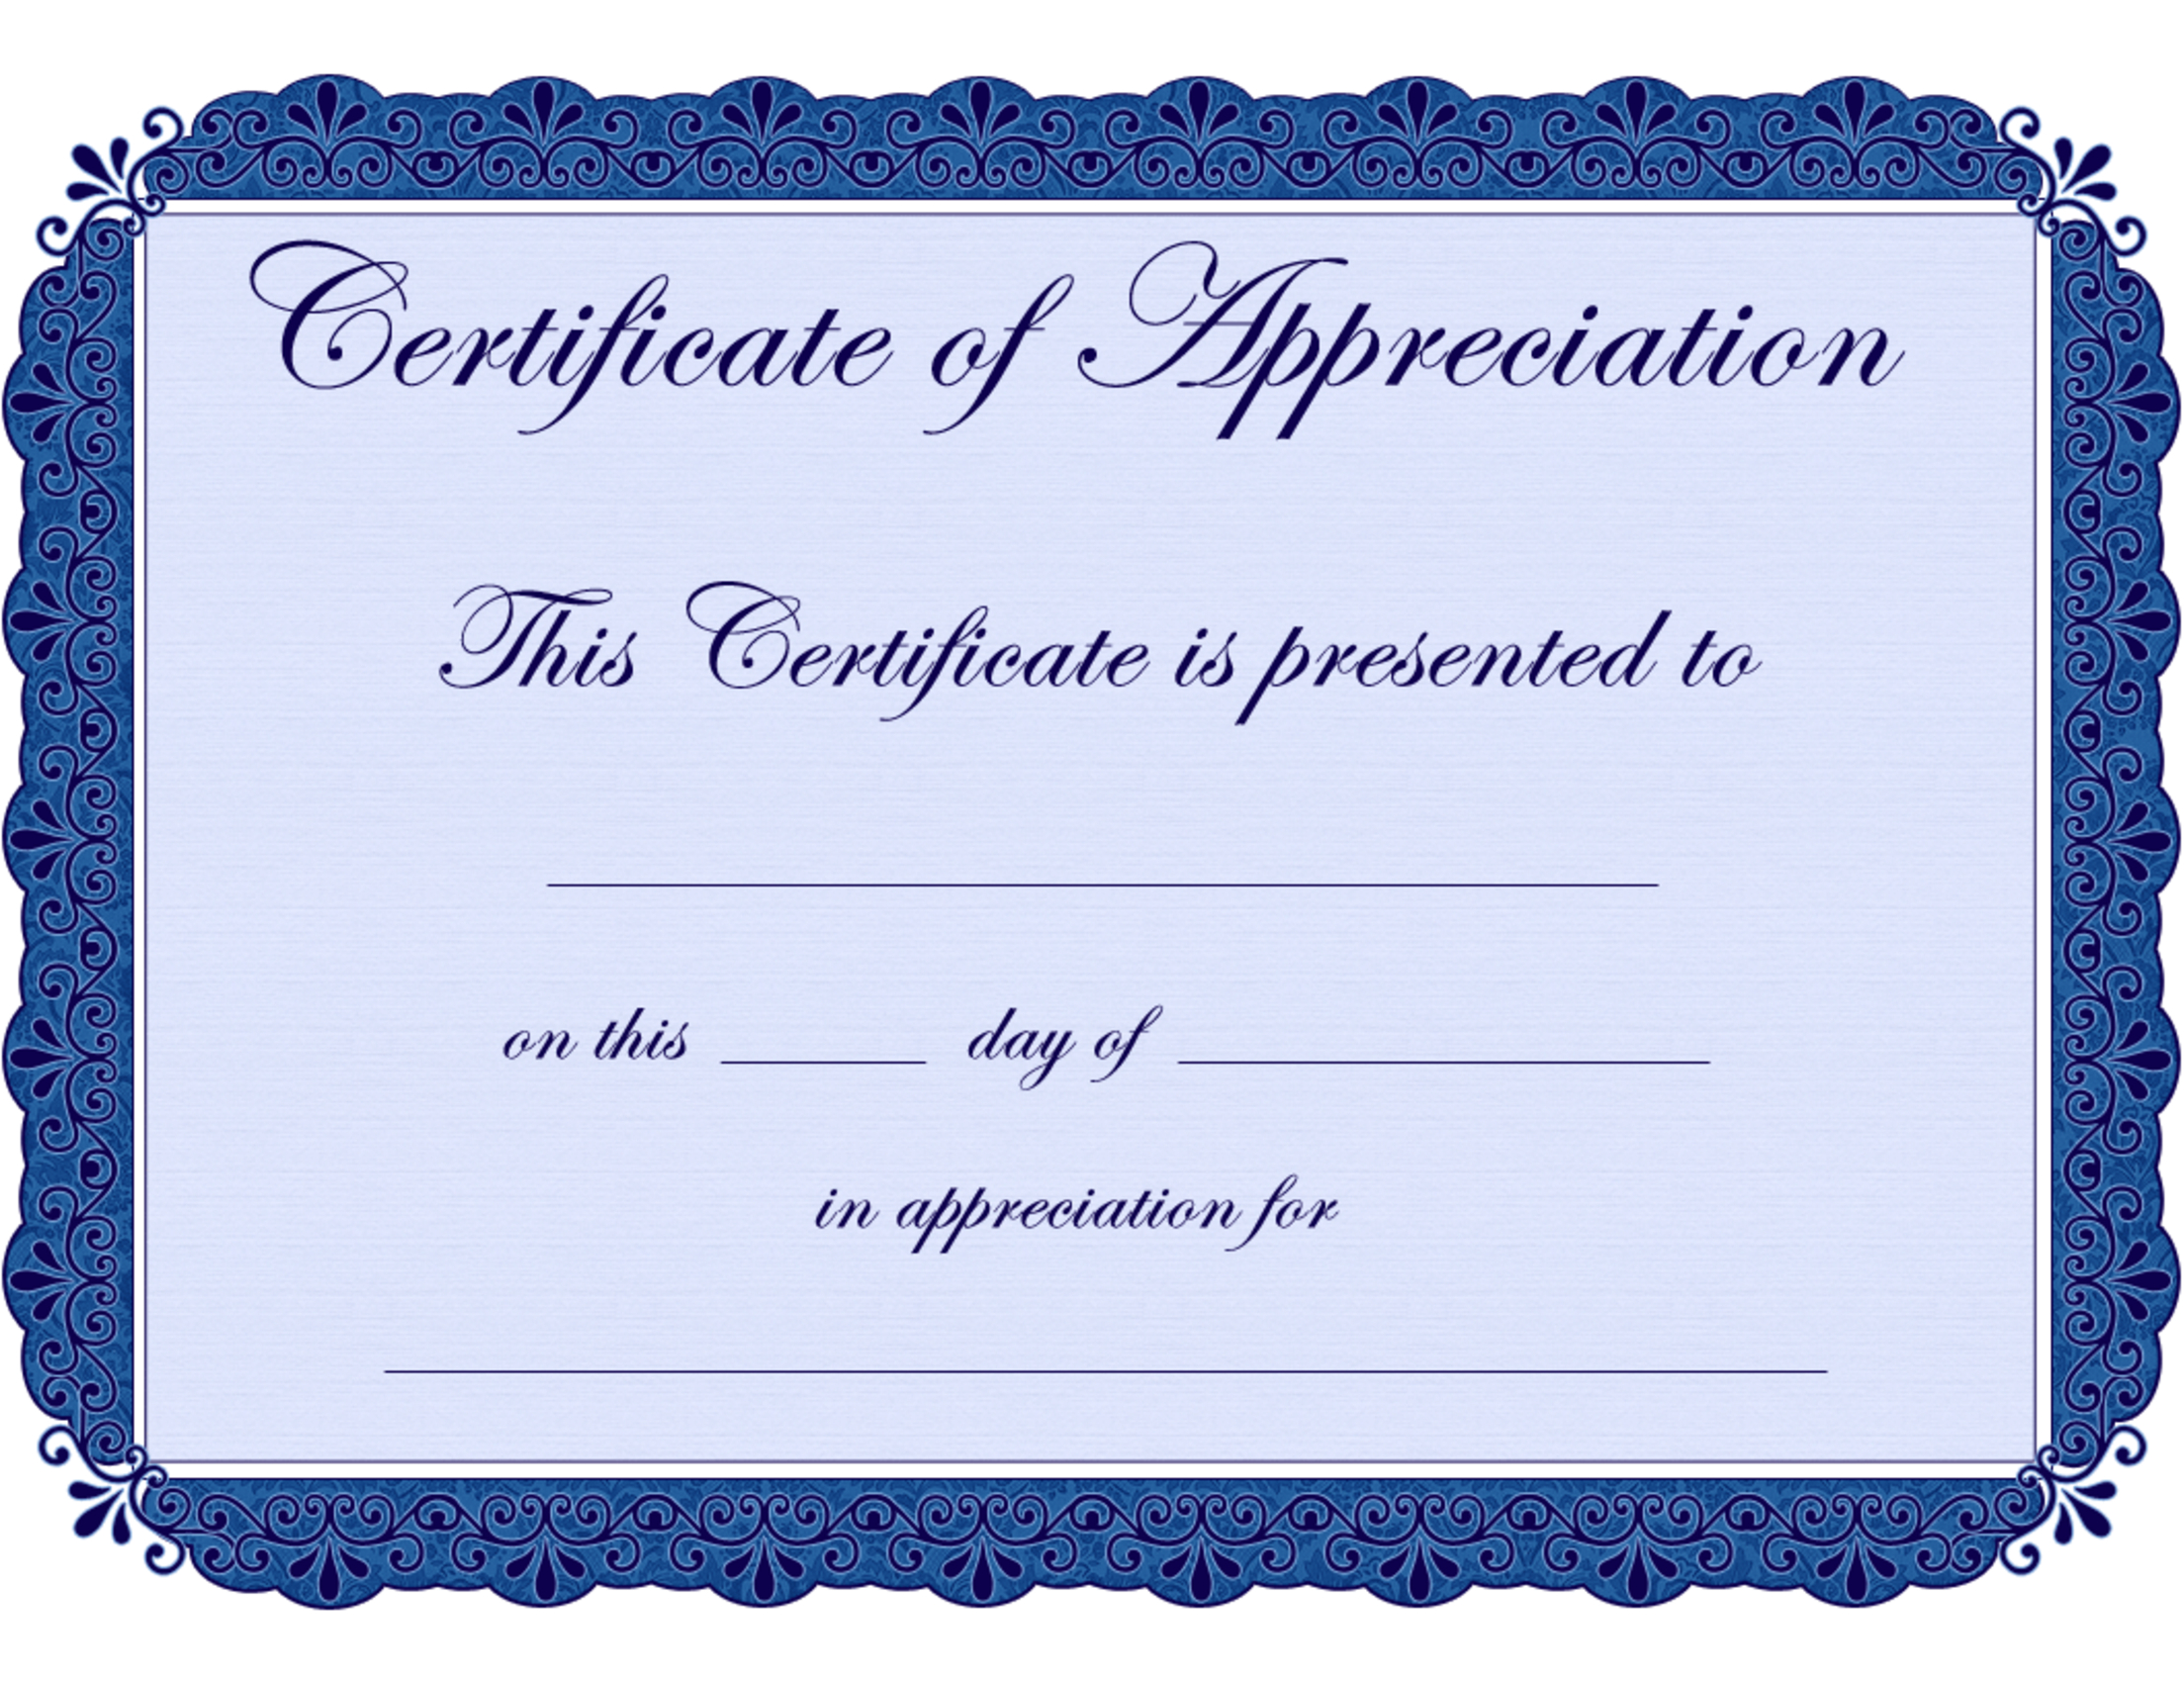 Free Printable Certificates Certificate Of Appreciation Certificate - Free Printable Certificate Of Completion